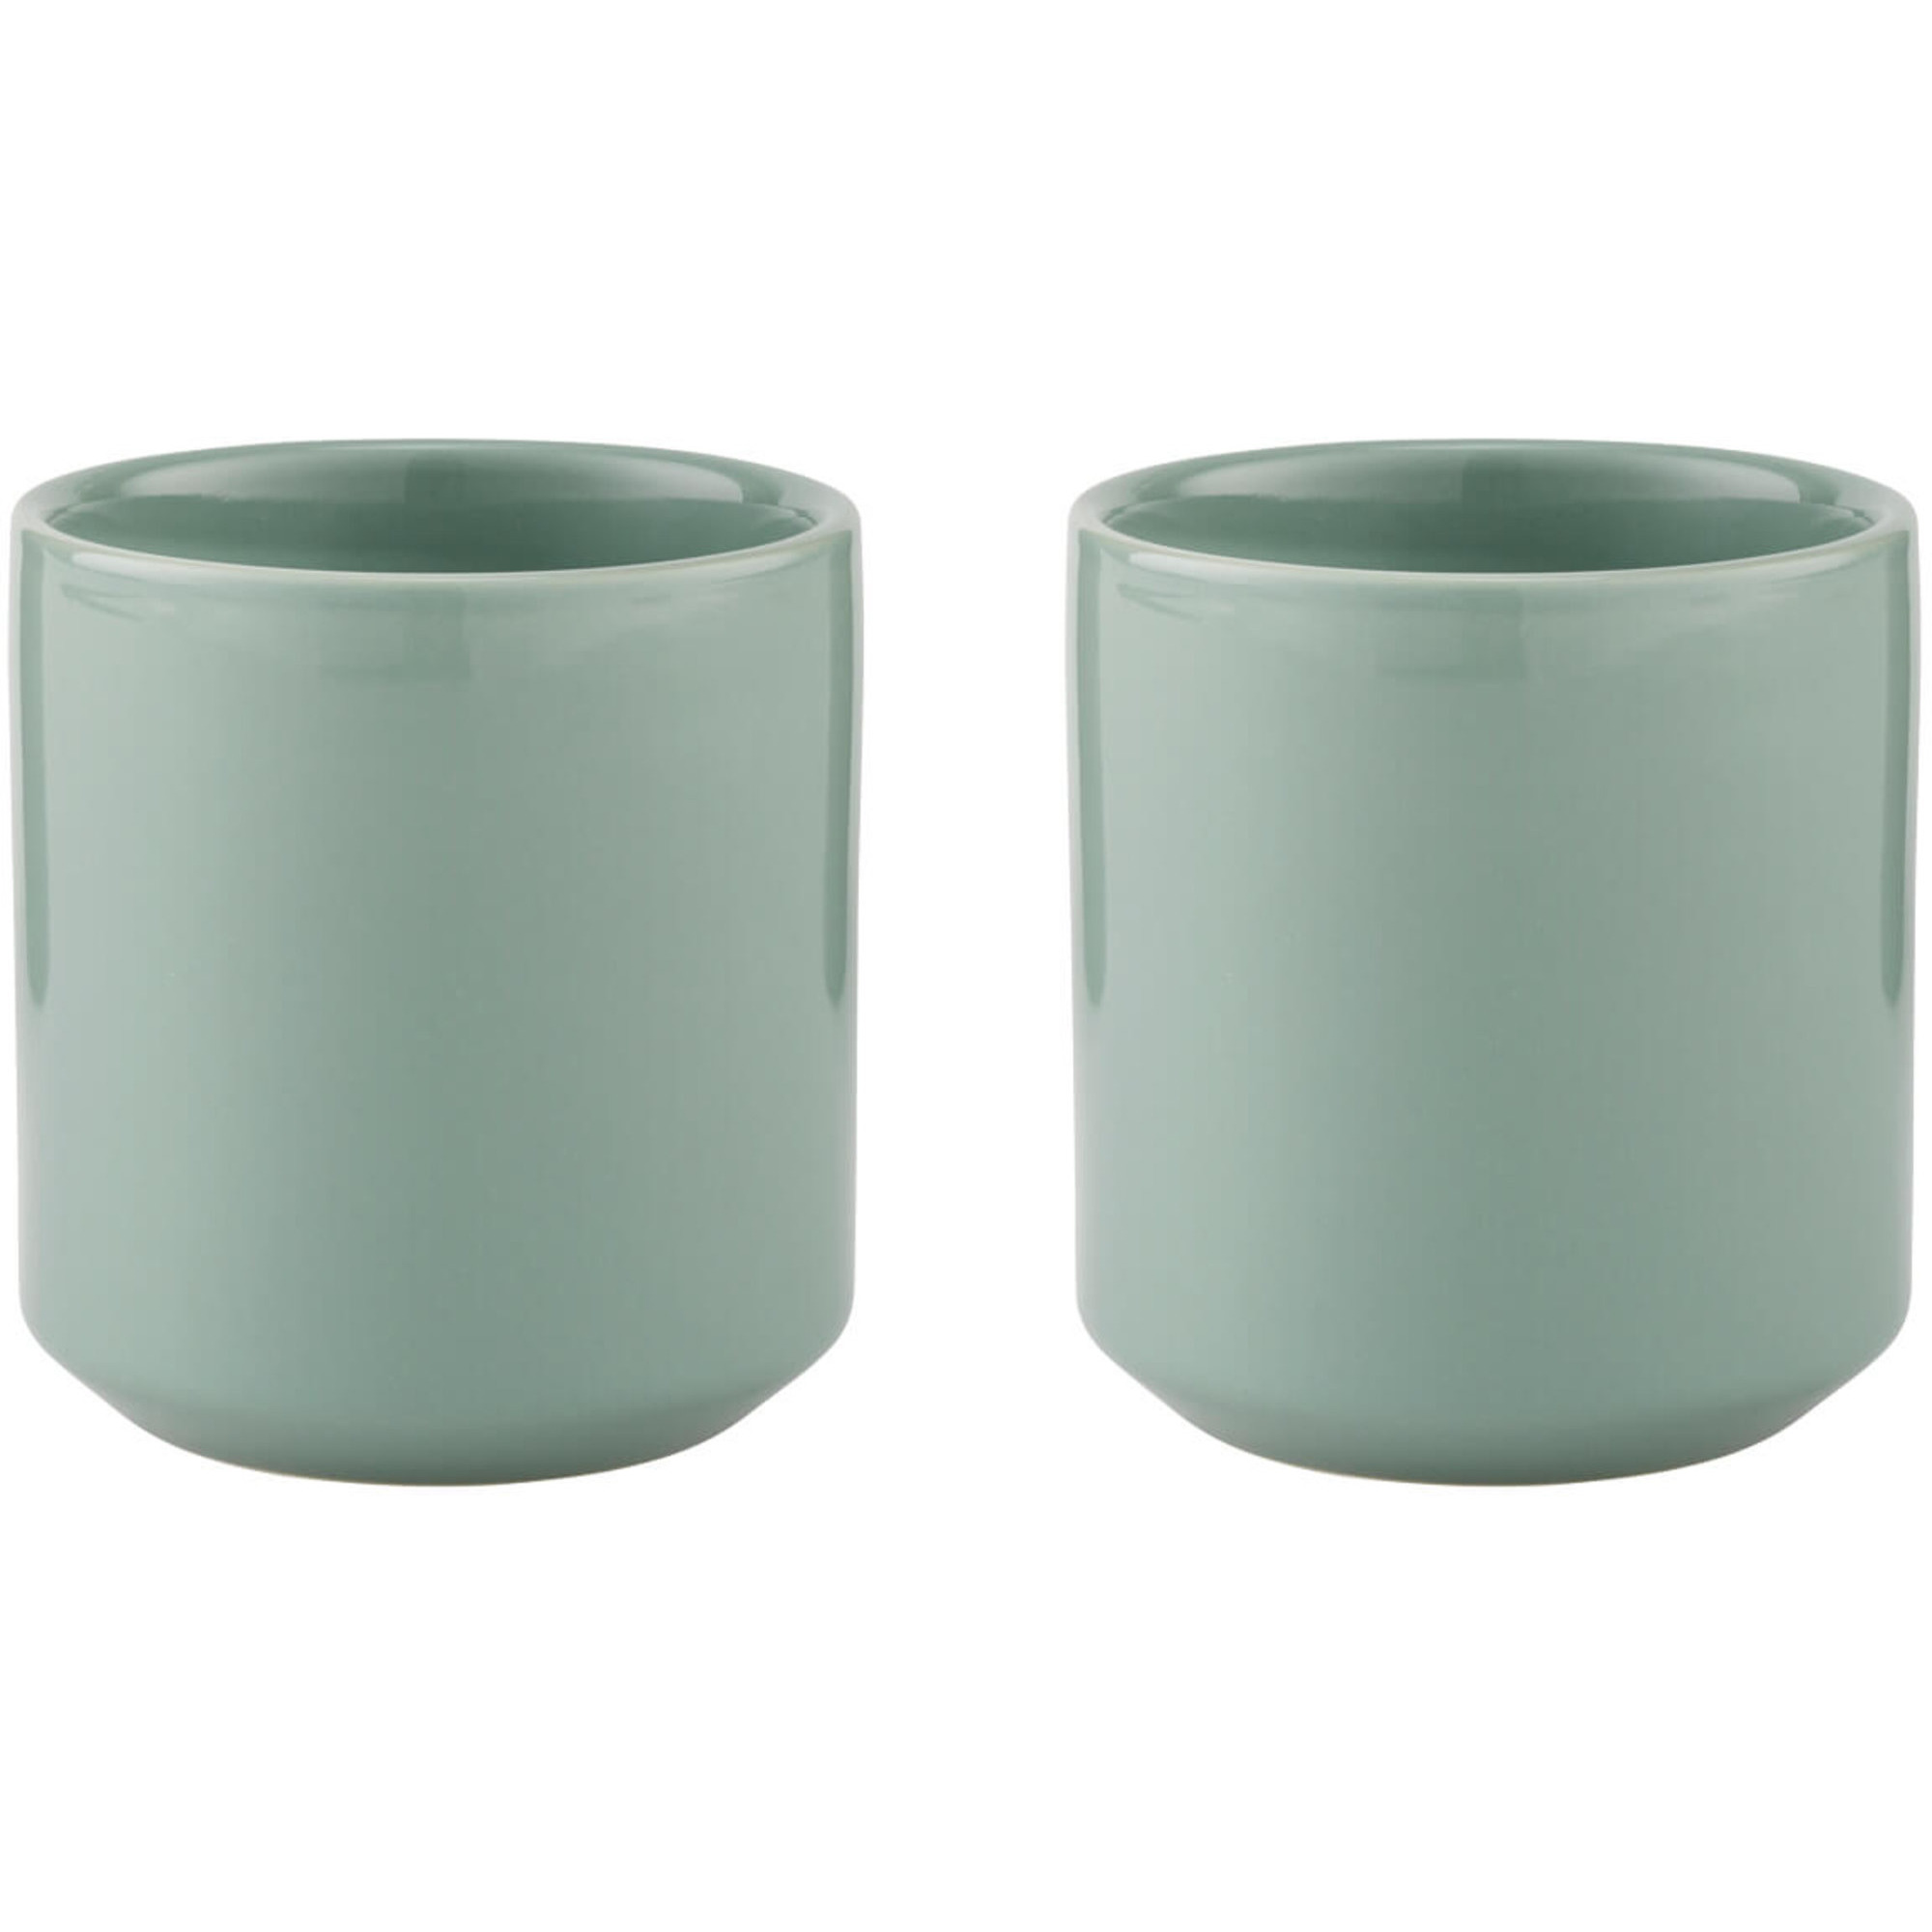 Stelton Core Termosmuggar 2-pack Dusty Green